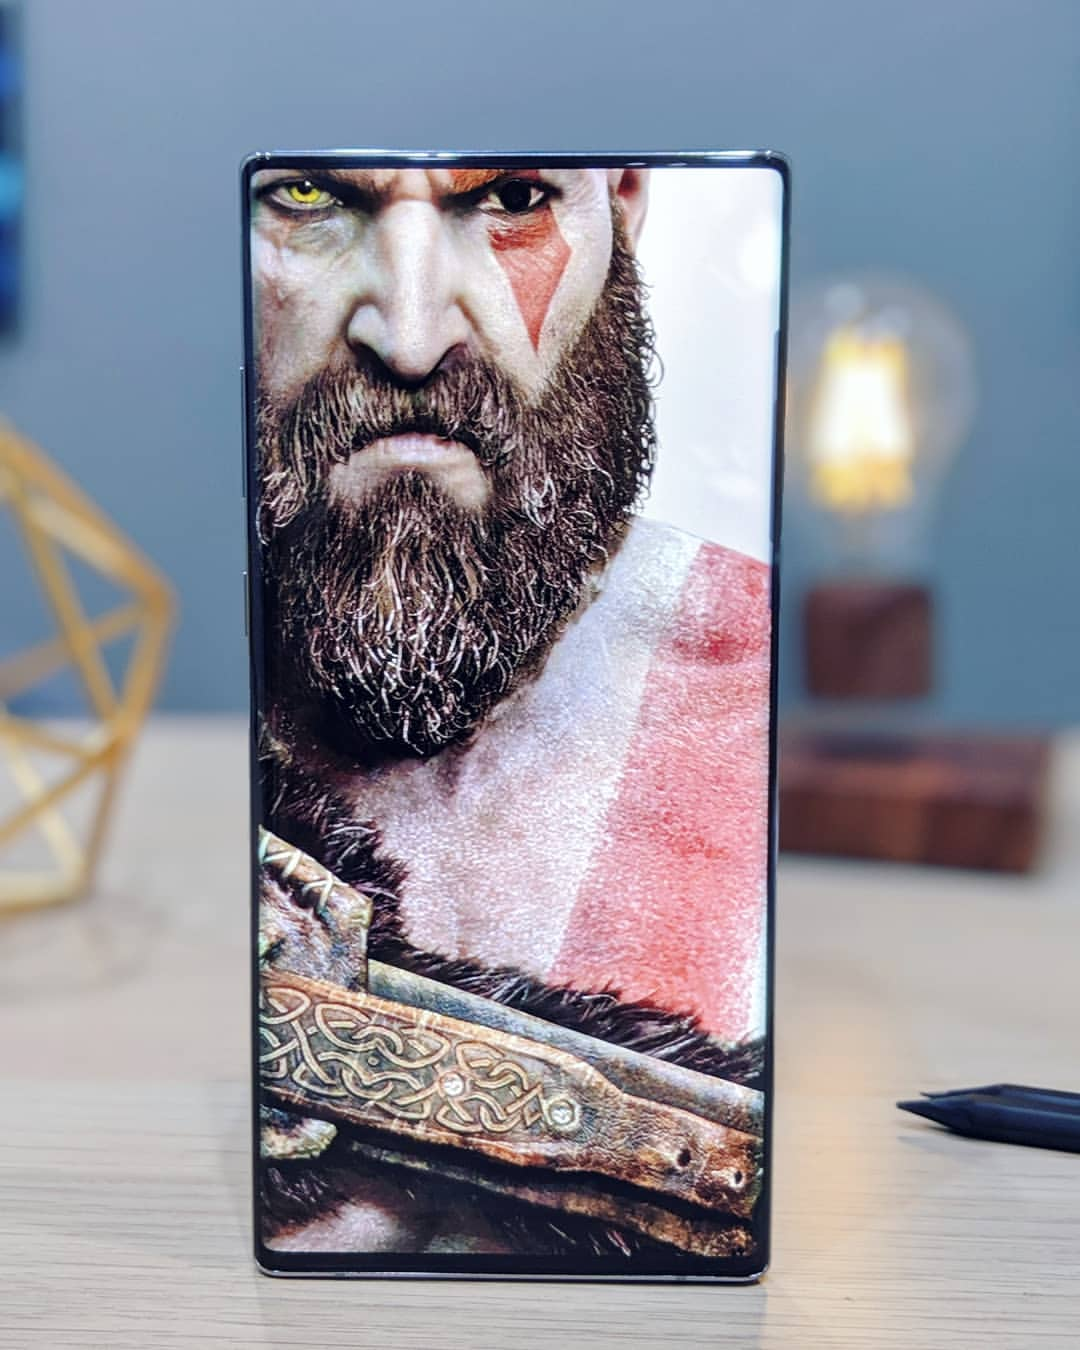 God Of War Genius Wallpaper Galaxy Note 10 Moudreview